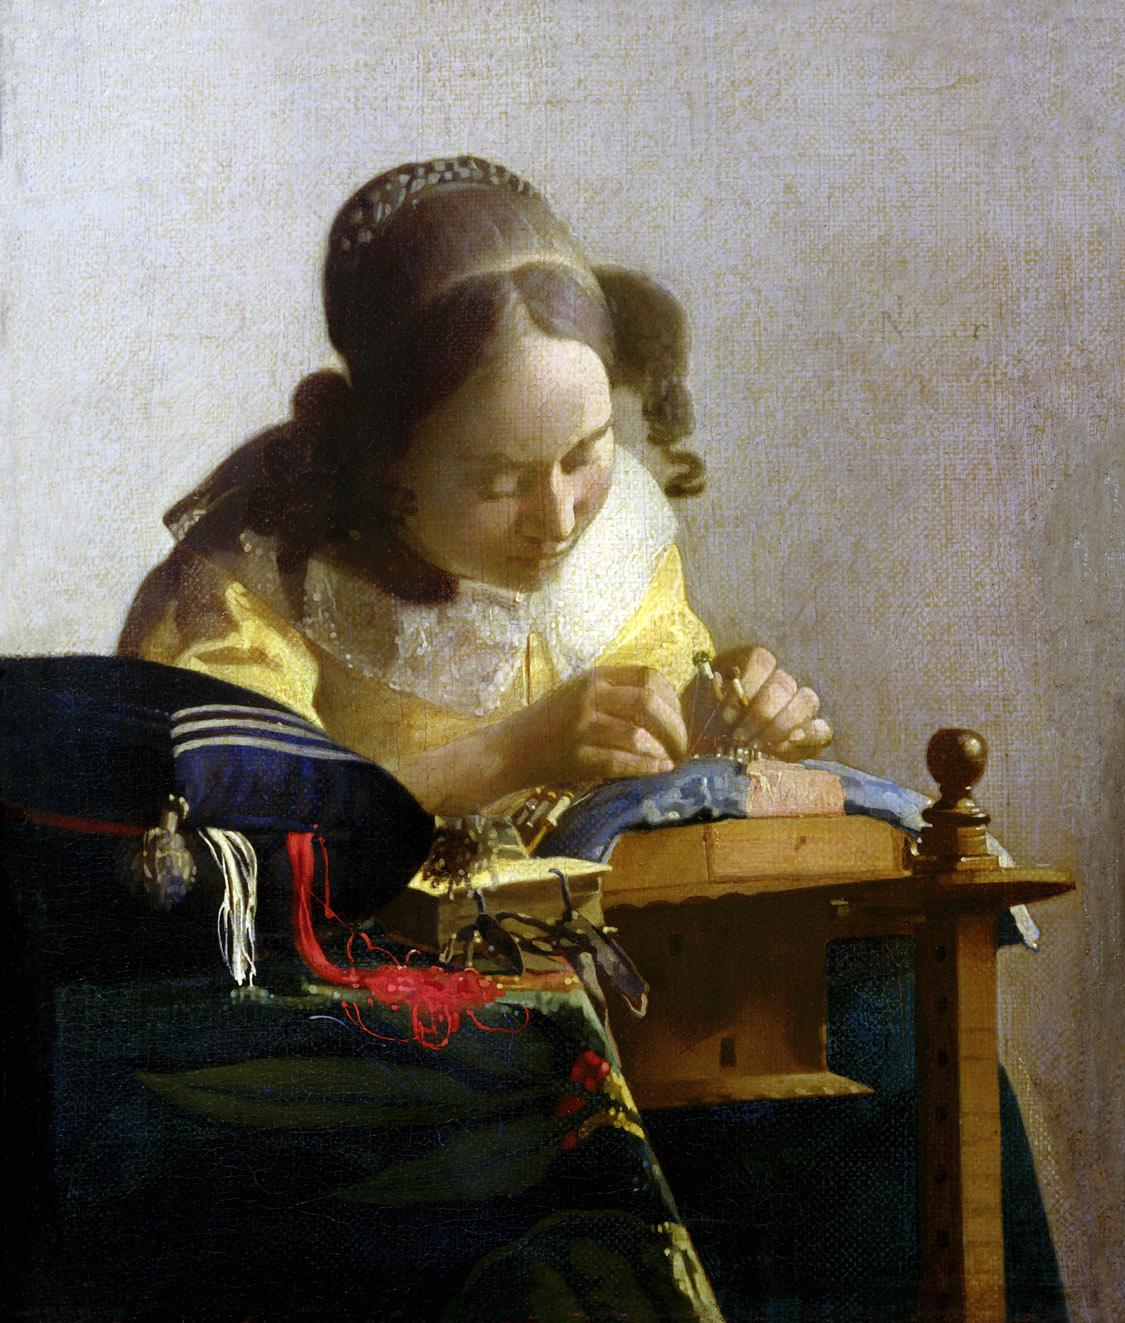 The Lacemaker, by Jan Vermeer, c. 1669. Louvre Museum, Paris.